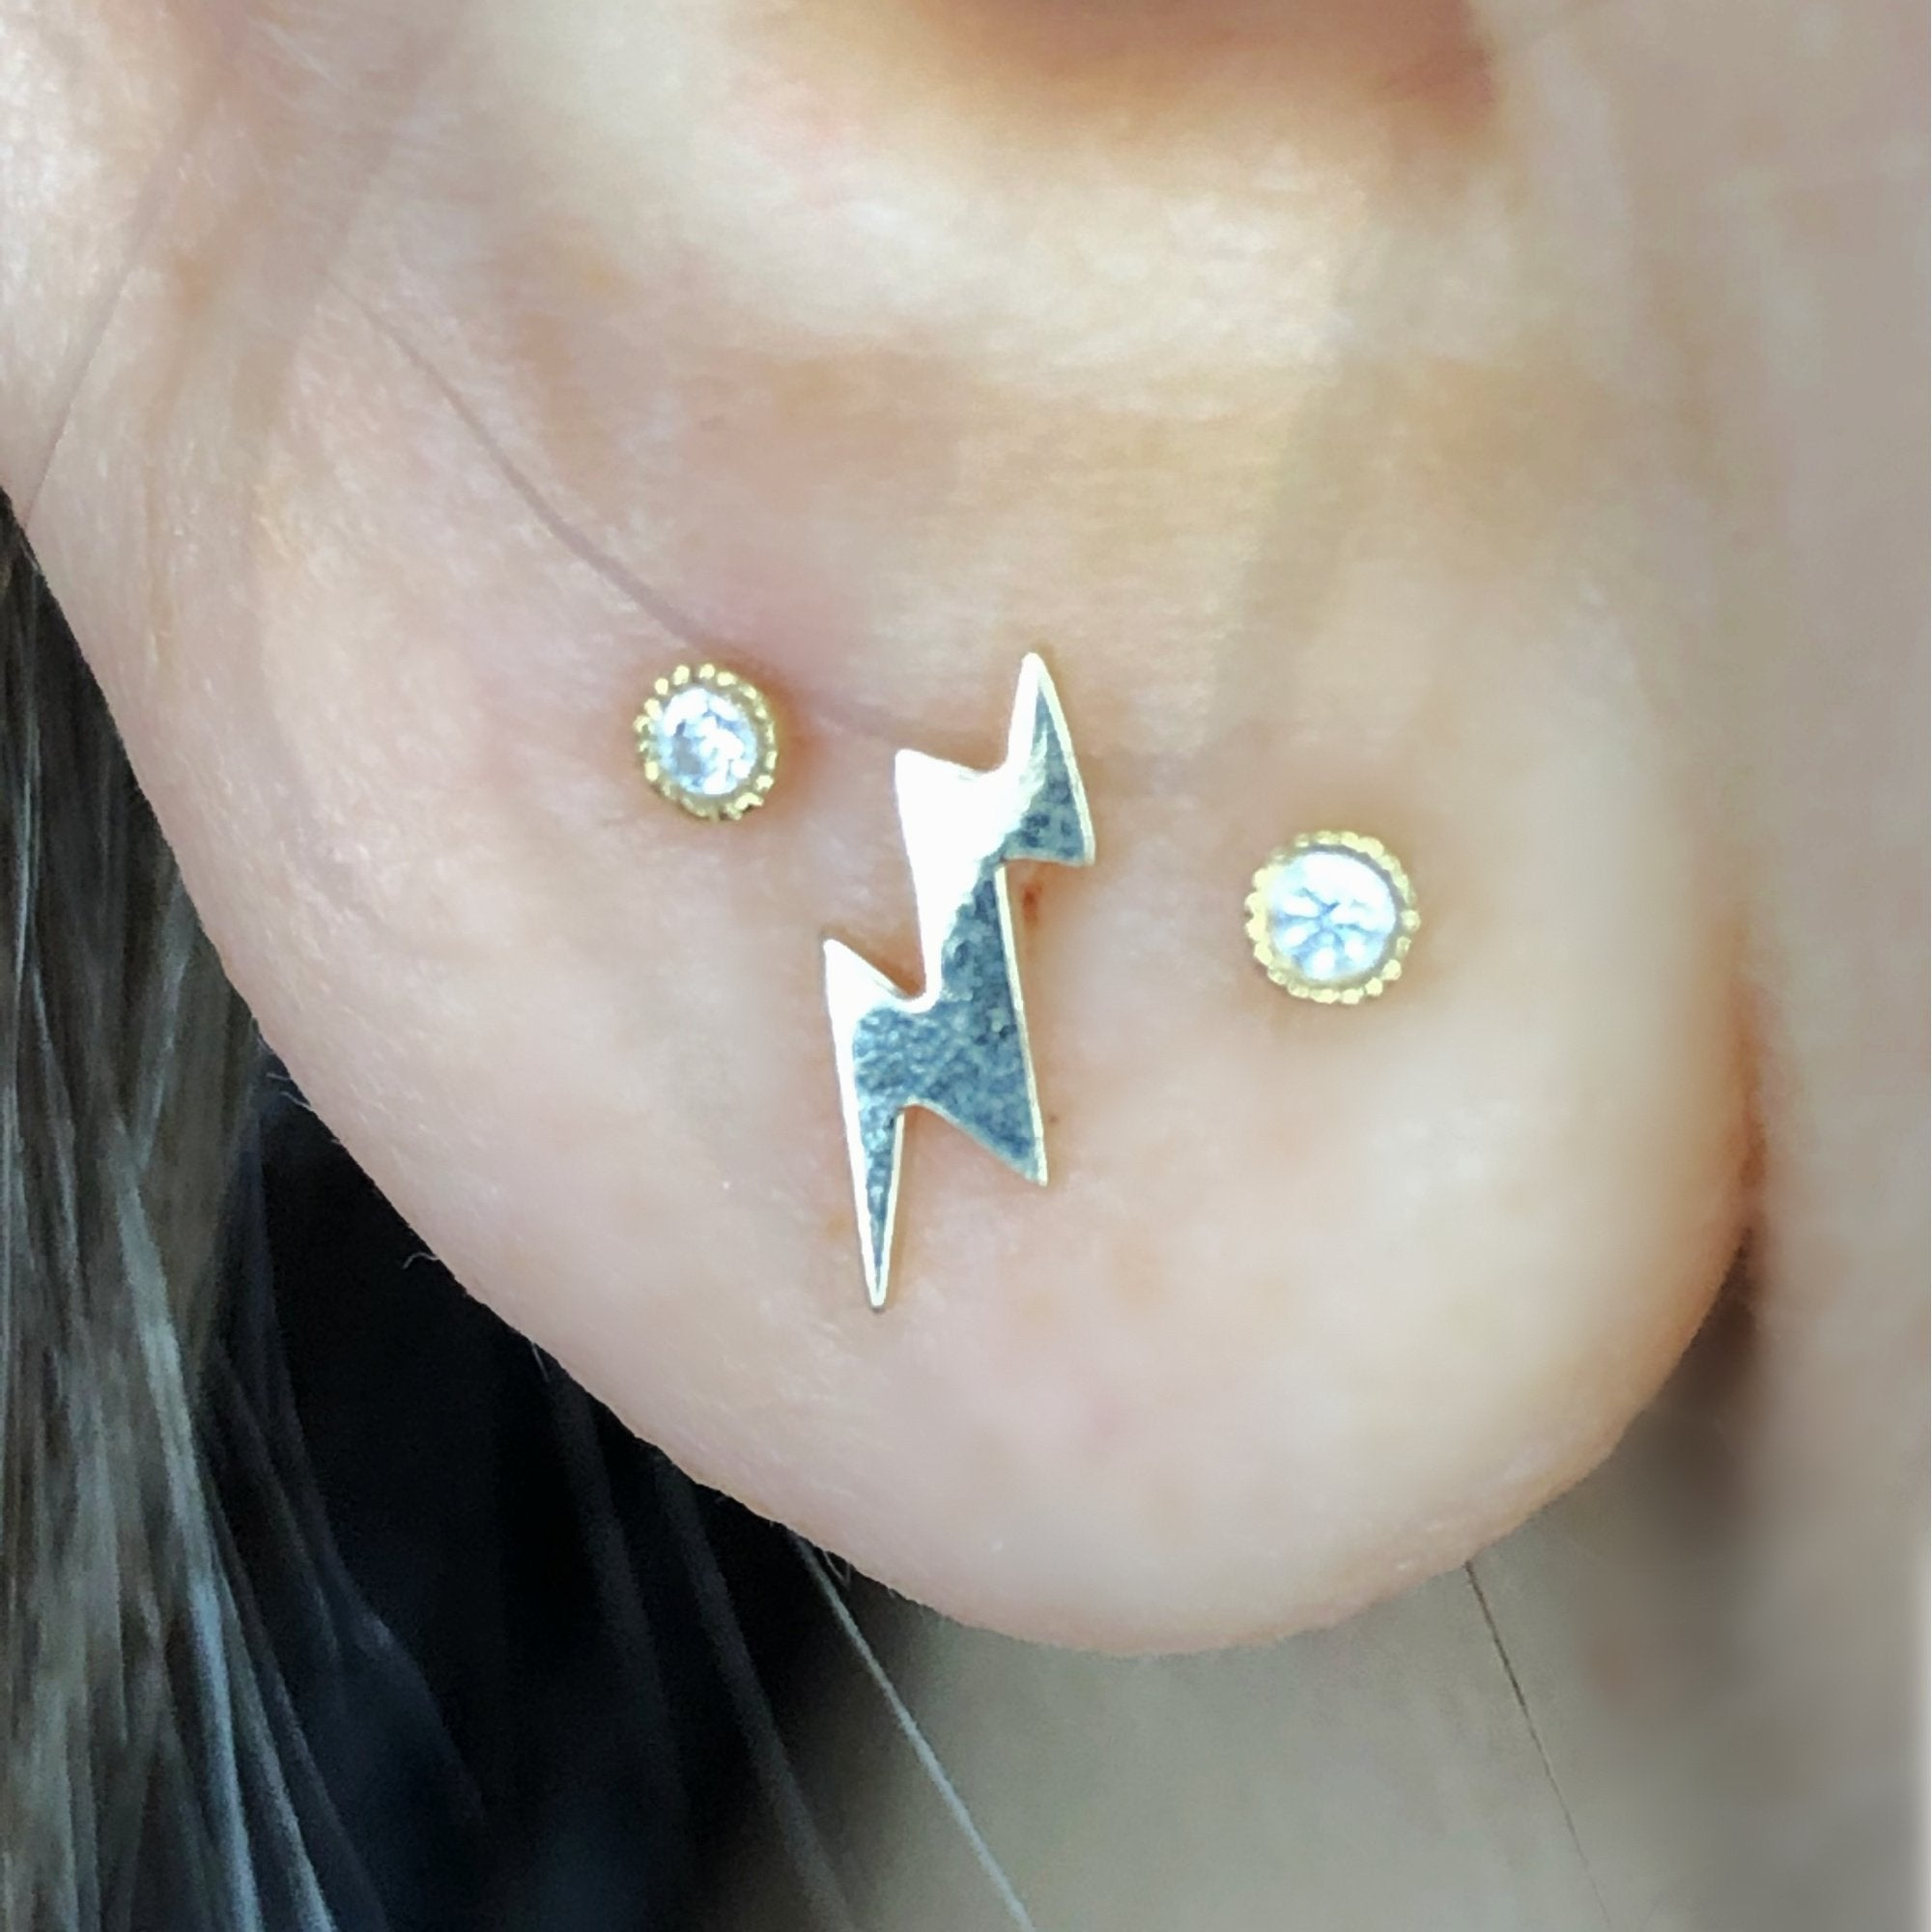 Lightning Bolt Stud Earring on Ear | Screw Back Earrings | Solid Gold Hypoallergenic Jewelry | Helix, Cartilage | Two of Most Fine Jewelry